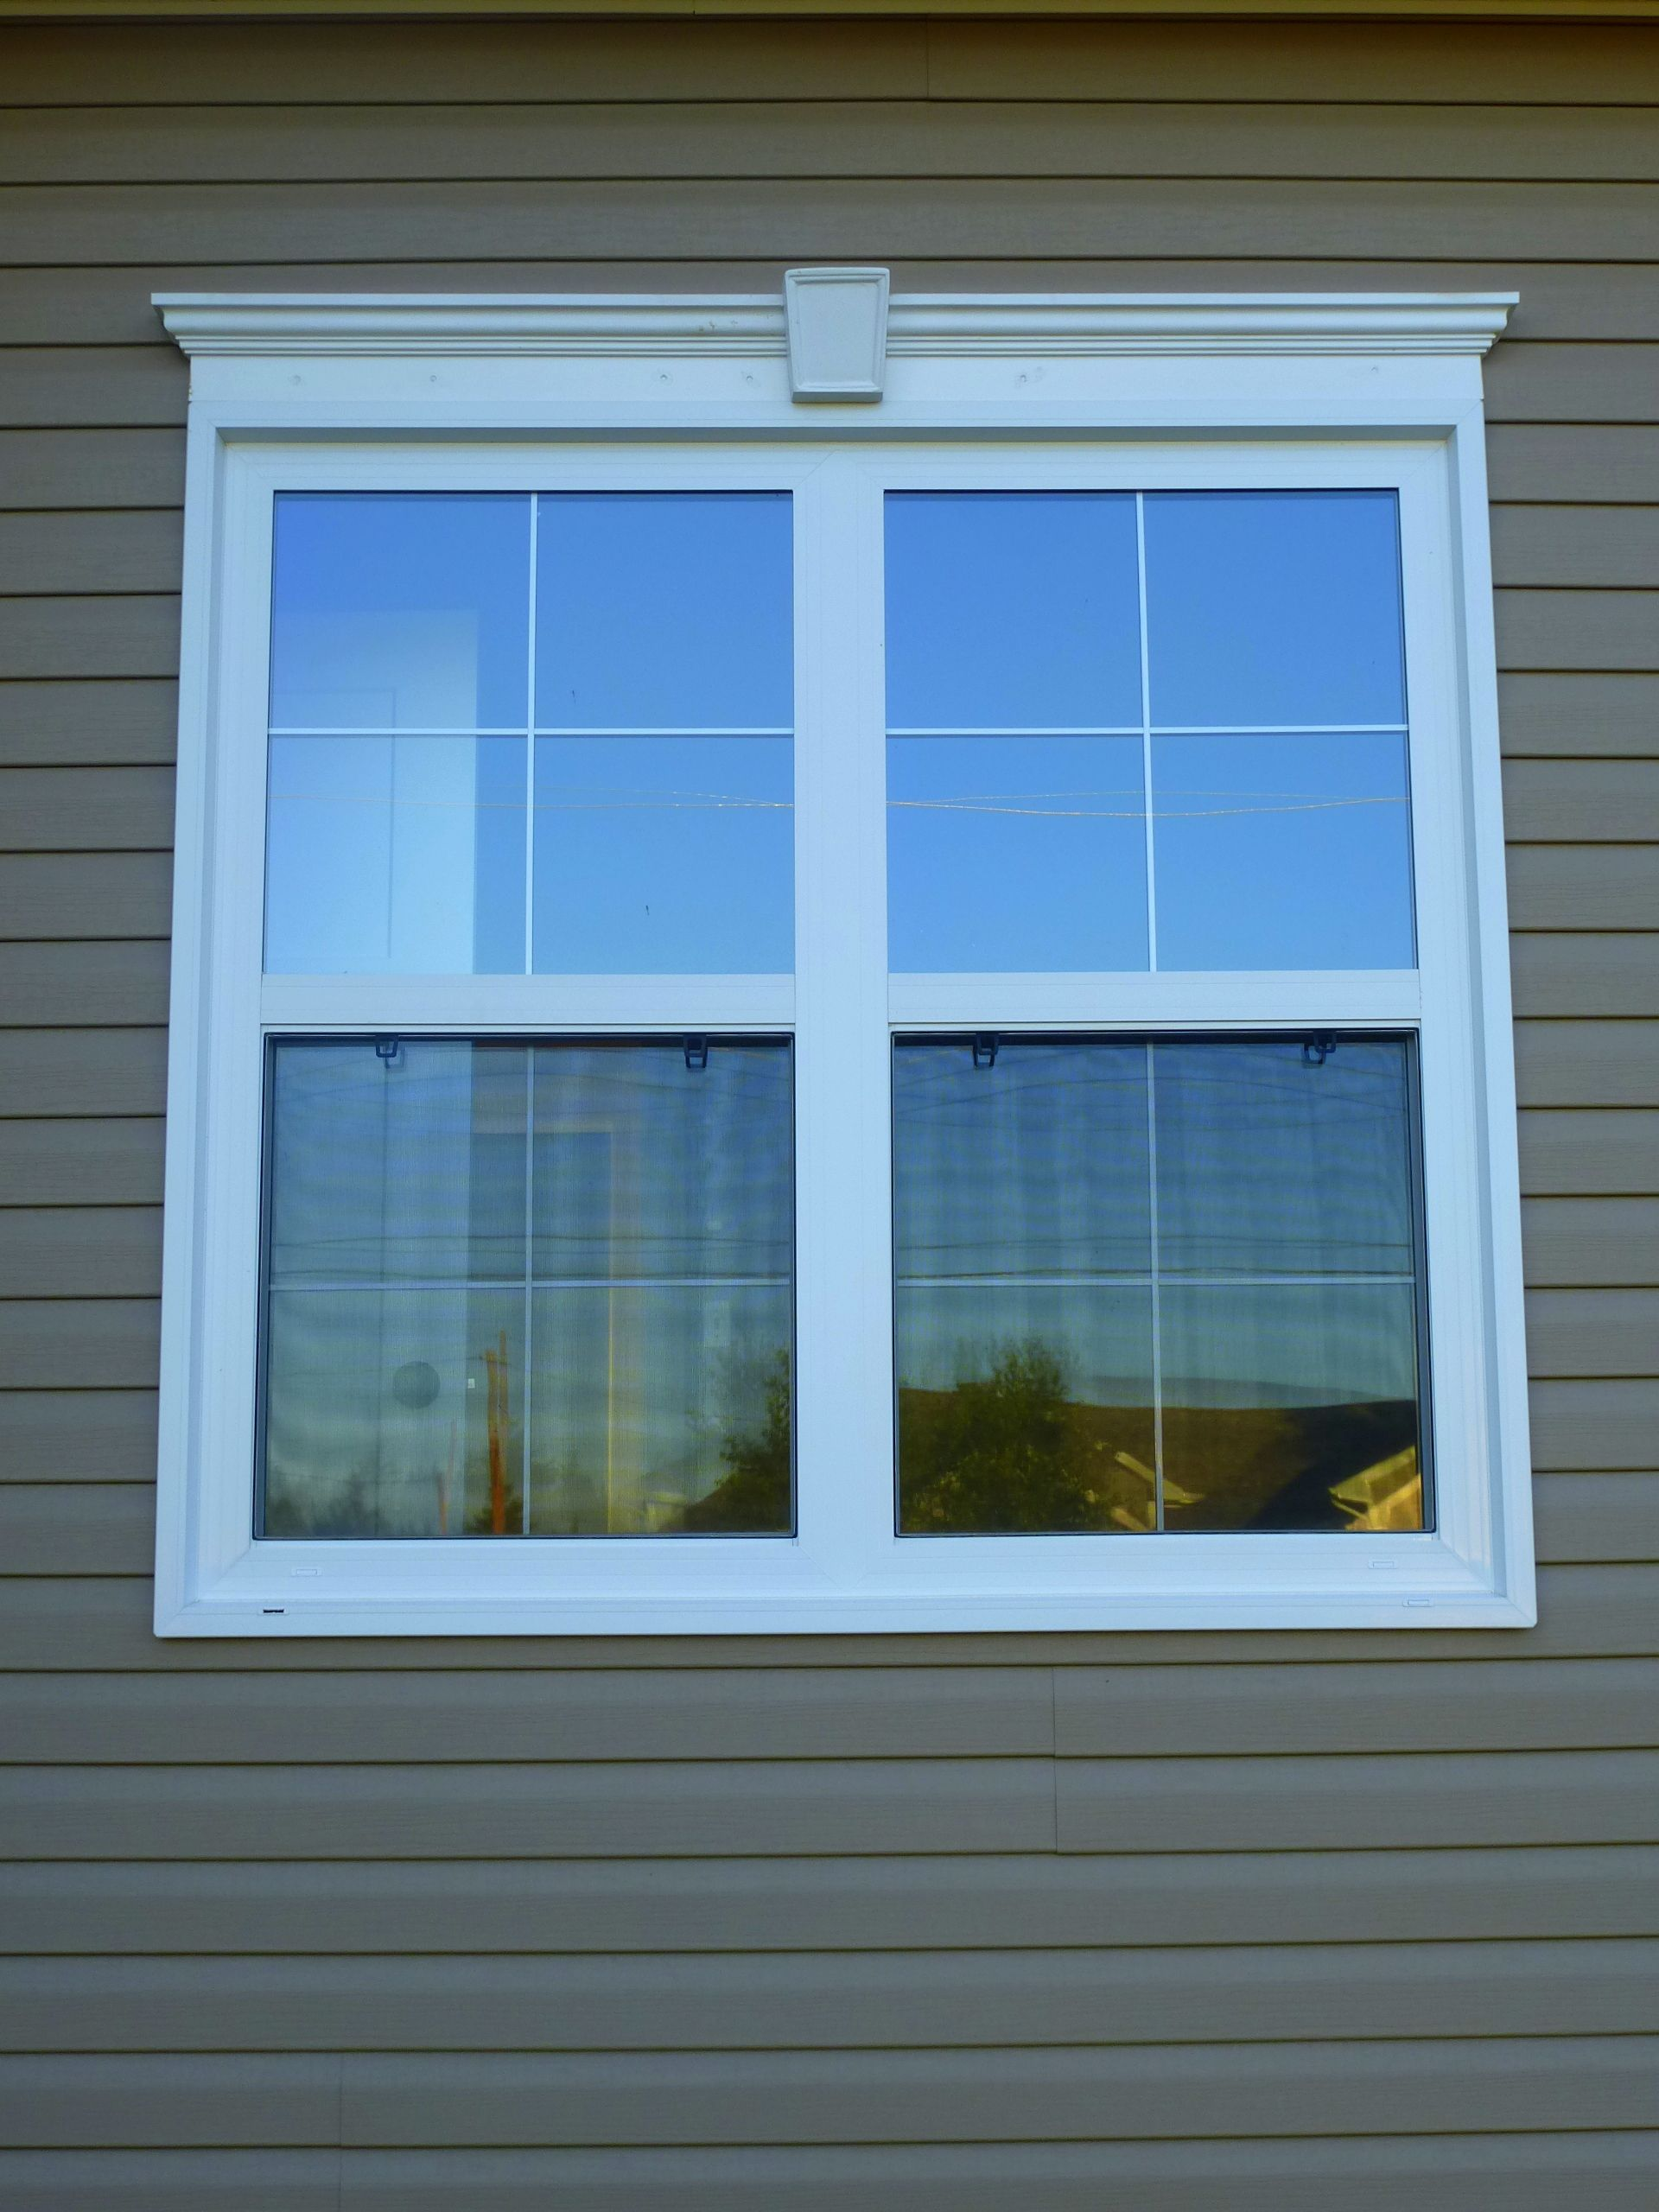 Cellular pvc window construction and technology - New Home Construction Using Kaycan Vinyl Siding Allweather Windows Doors Available At